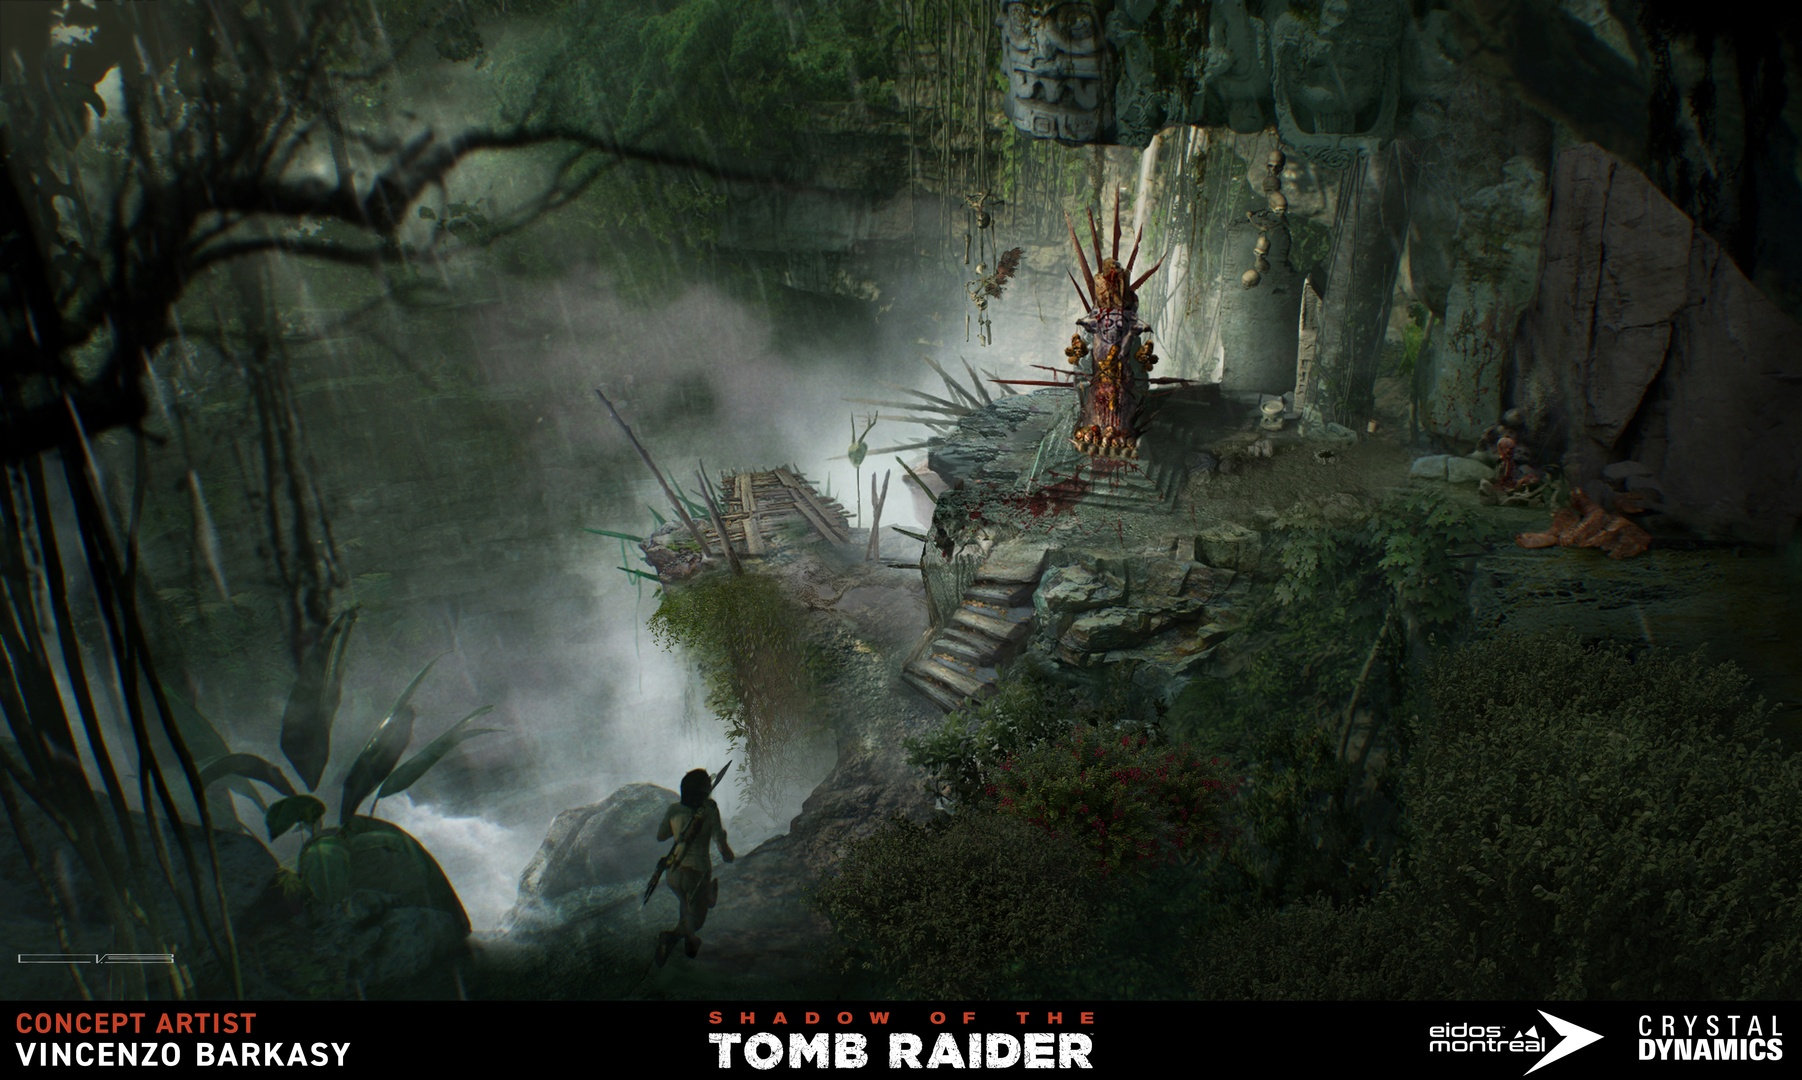 Shadow Of The Tomb Raider Concept Art: Shadow Of The Tomb Raider